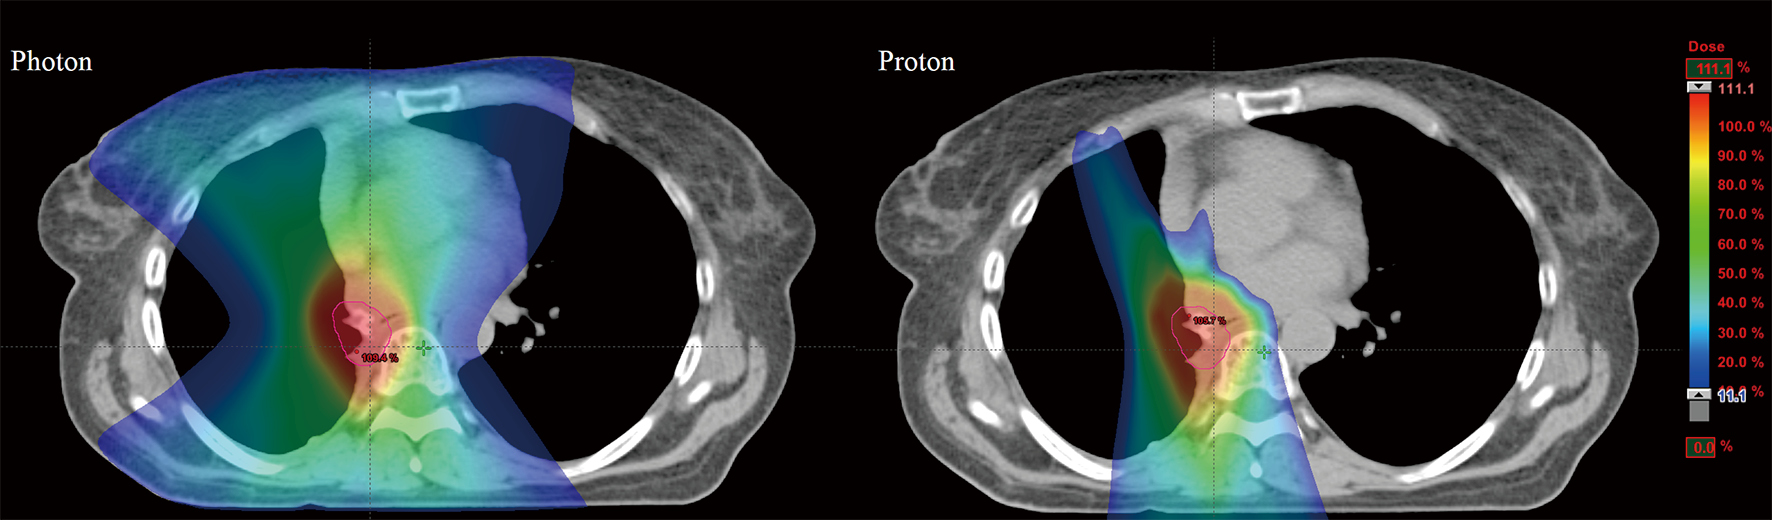 Advances In Radiotherapy Techniques And Delivery For Non